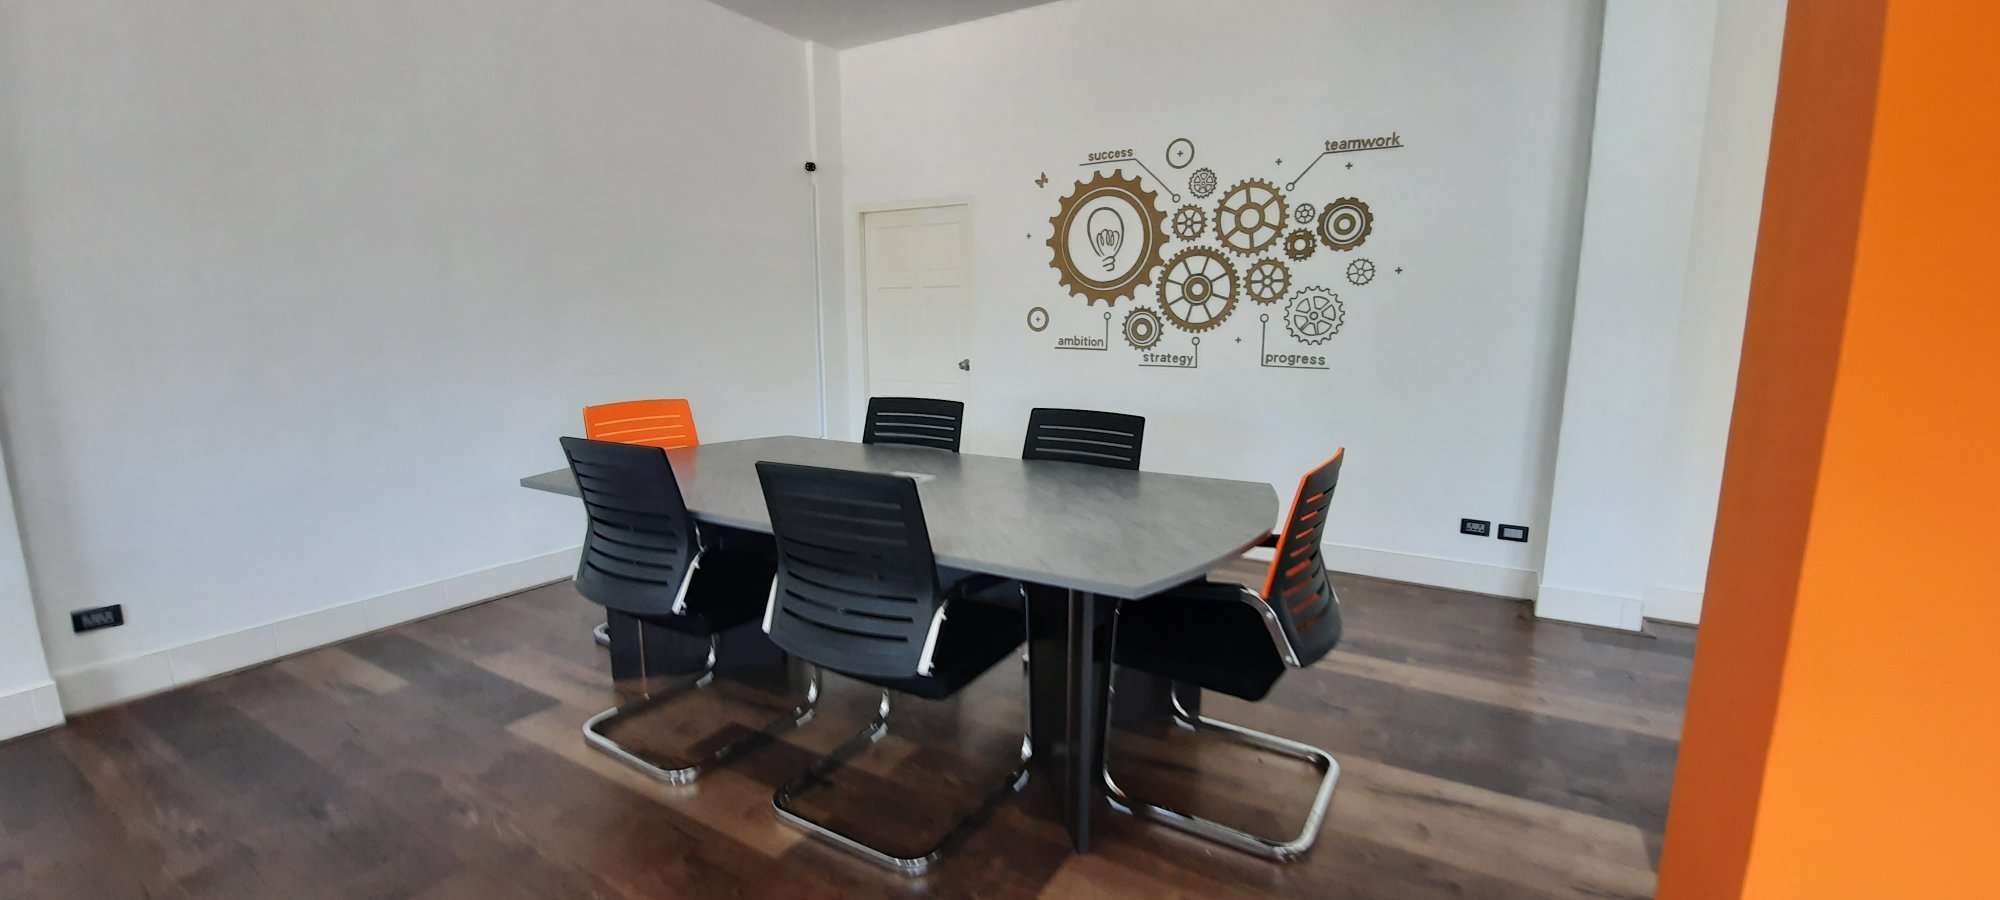 Fusion Graphics Meeting Area